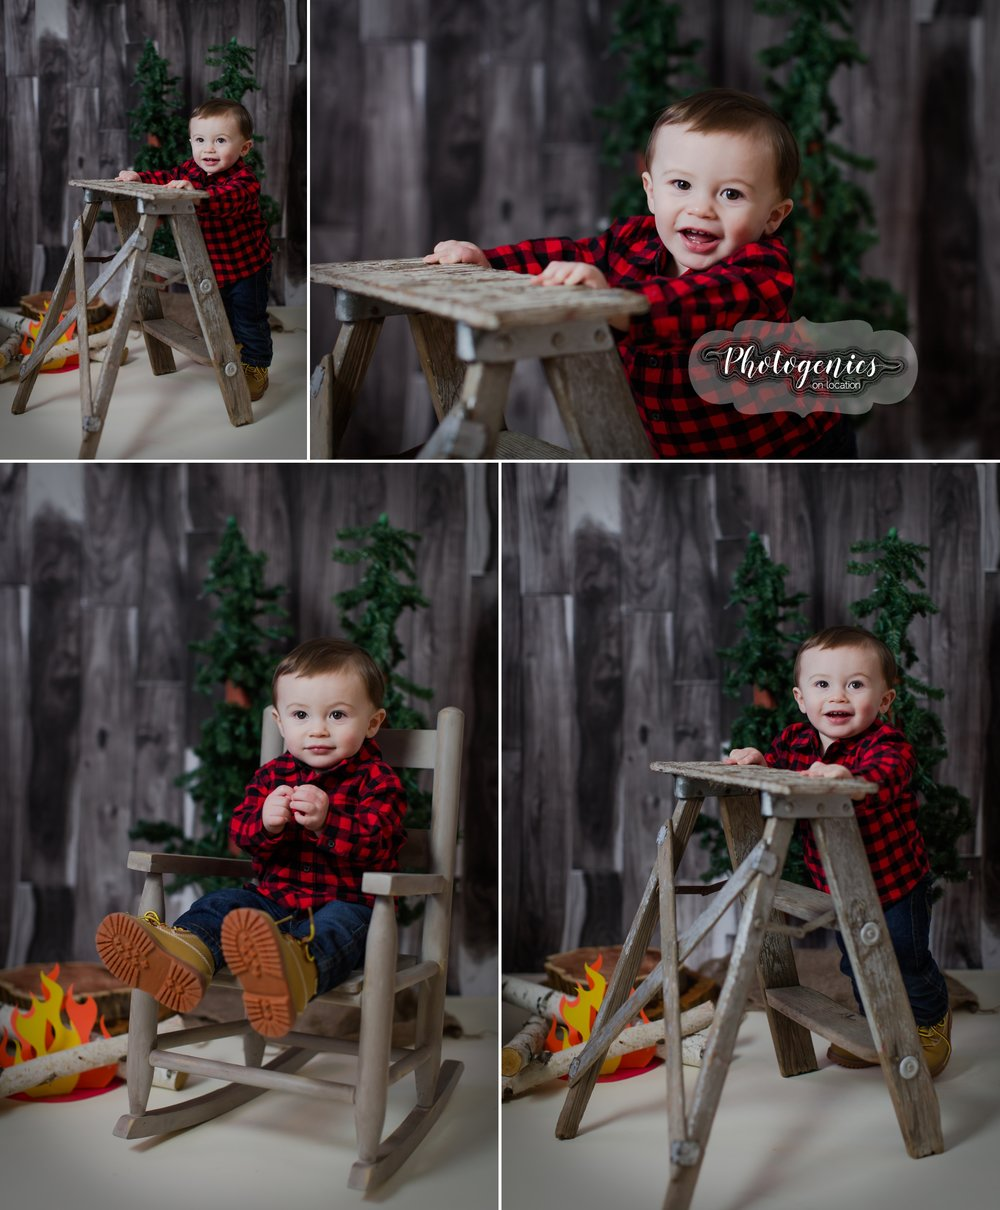 lumberjack_cake_smash_camping_theme_set_photography_woods_outfit_rustic_creative_wooden_toys_props